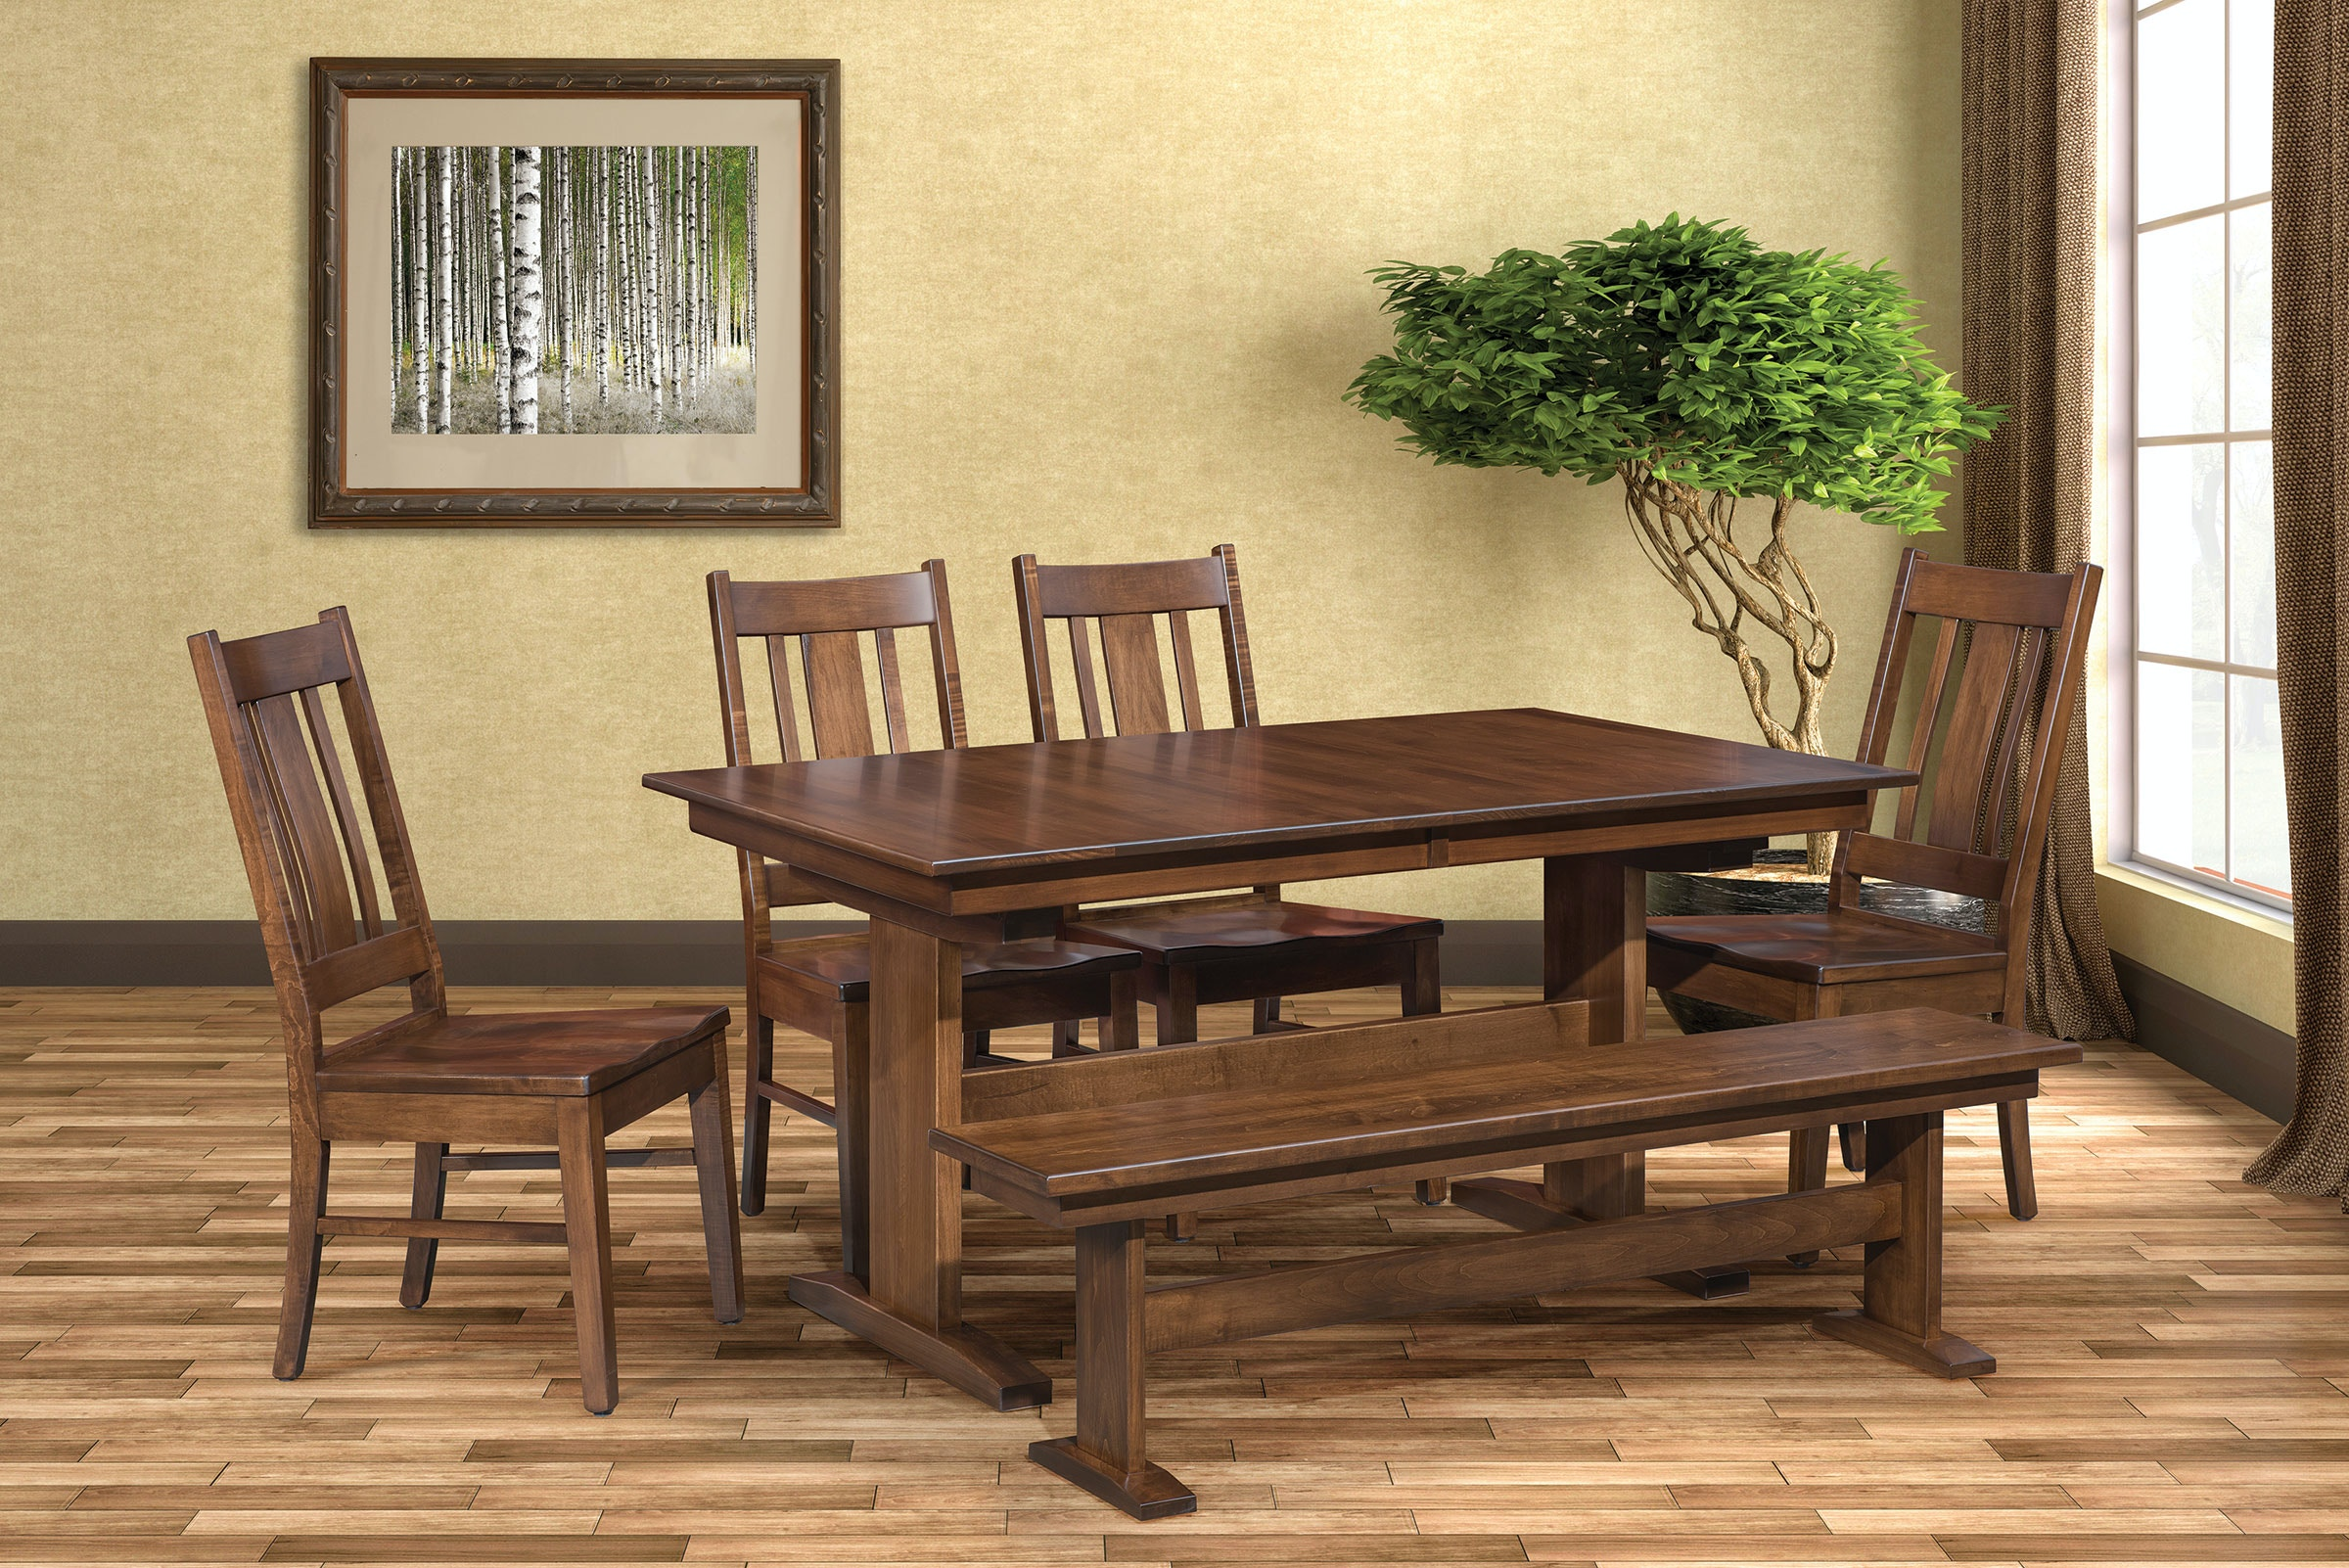 Great Lakes Dining Room Set MR Set 1